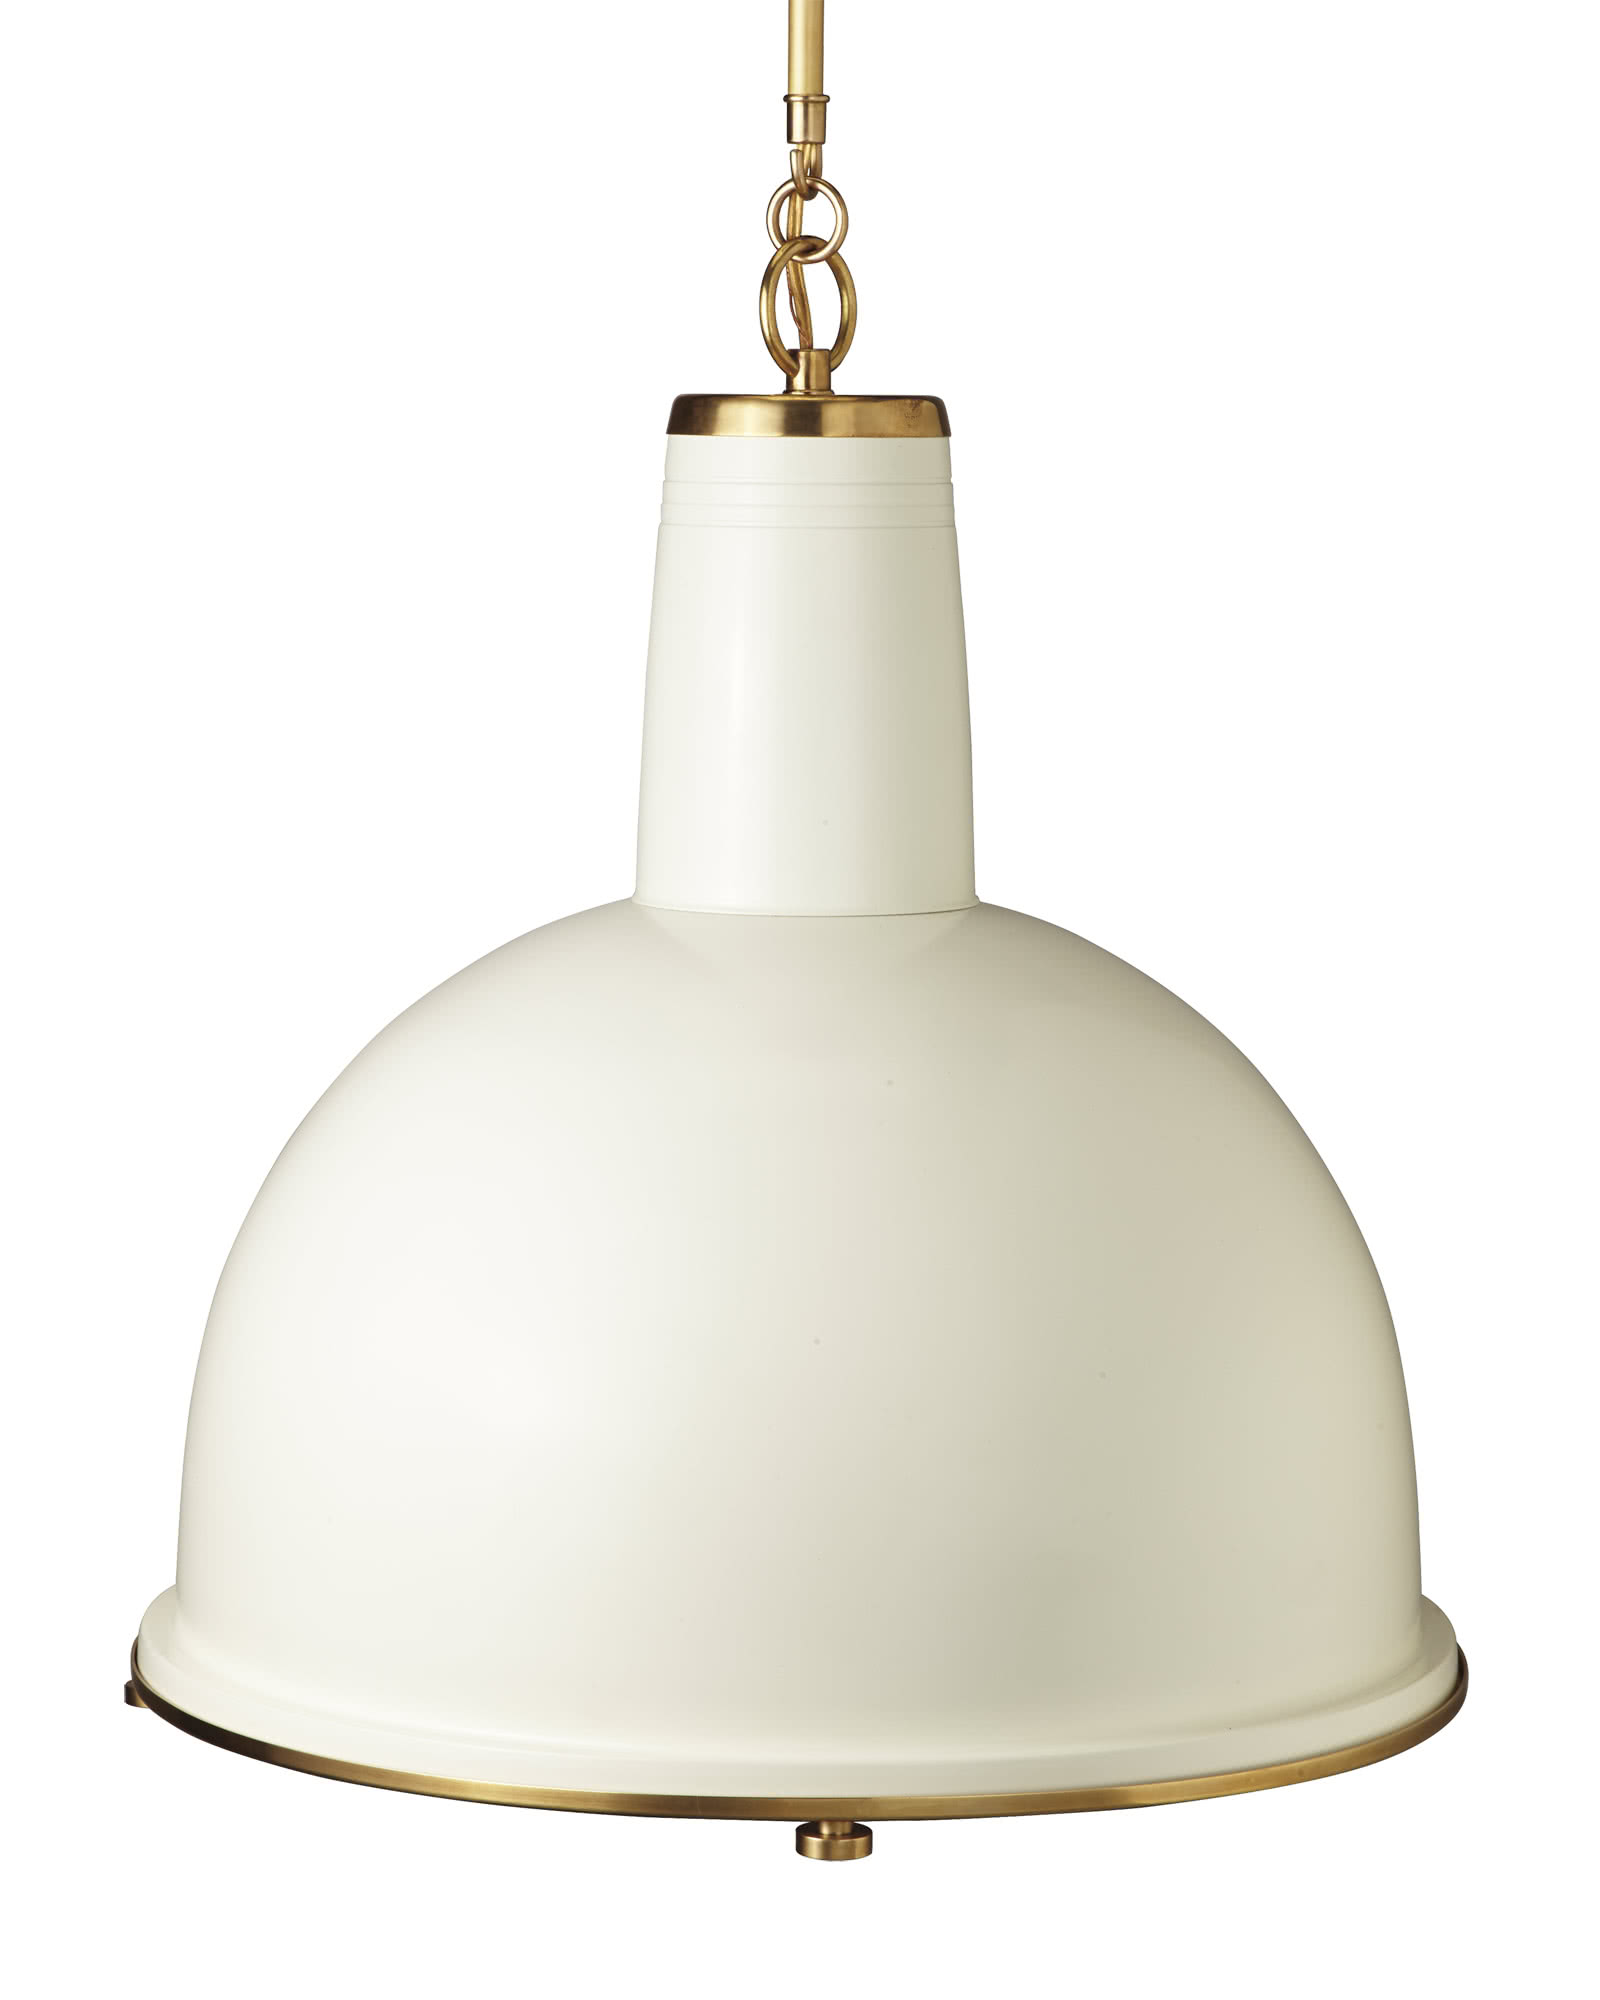 bathroom spot lights pendant serena amp 11525